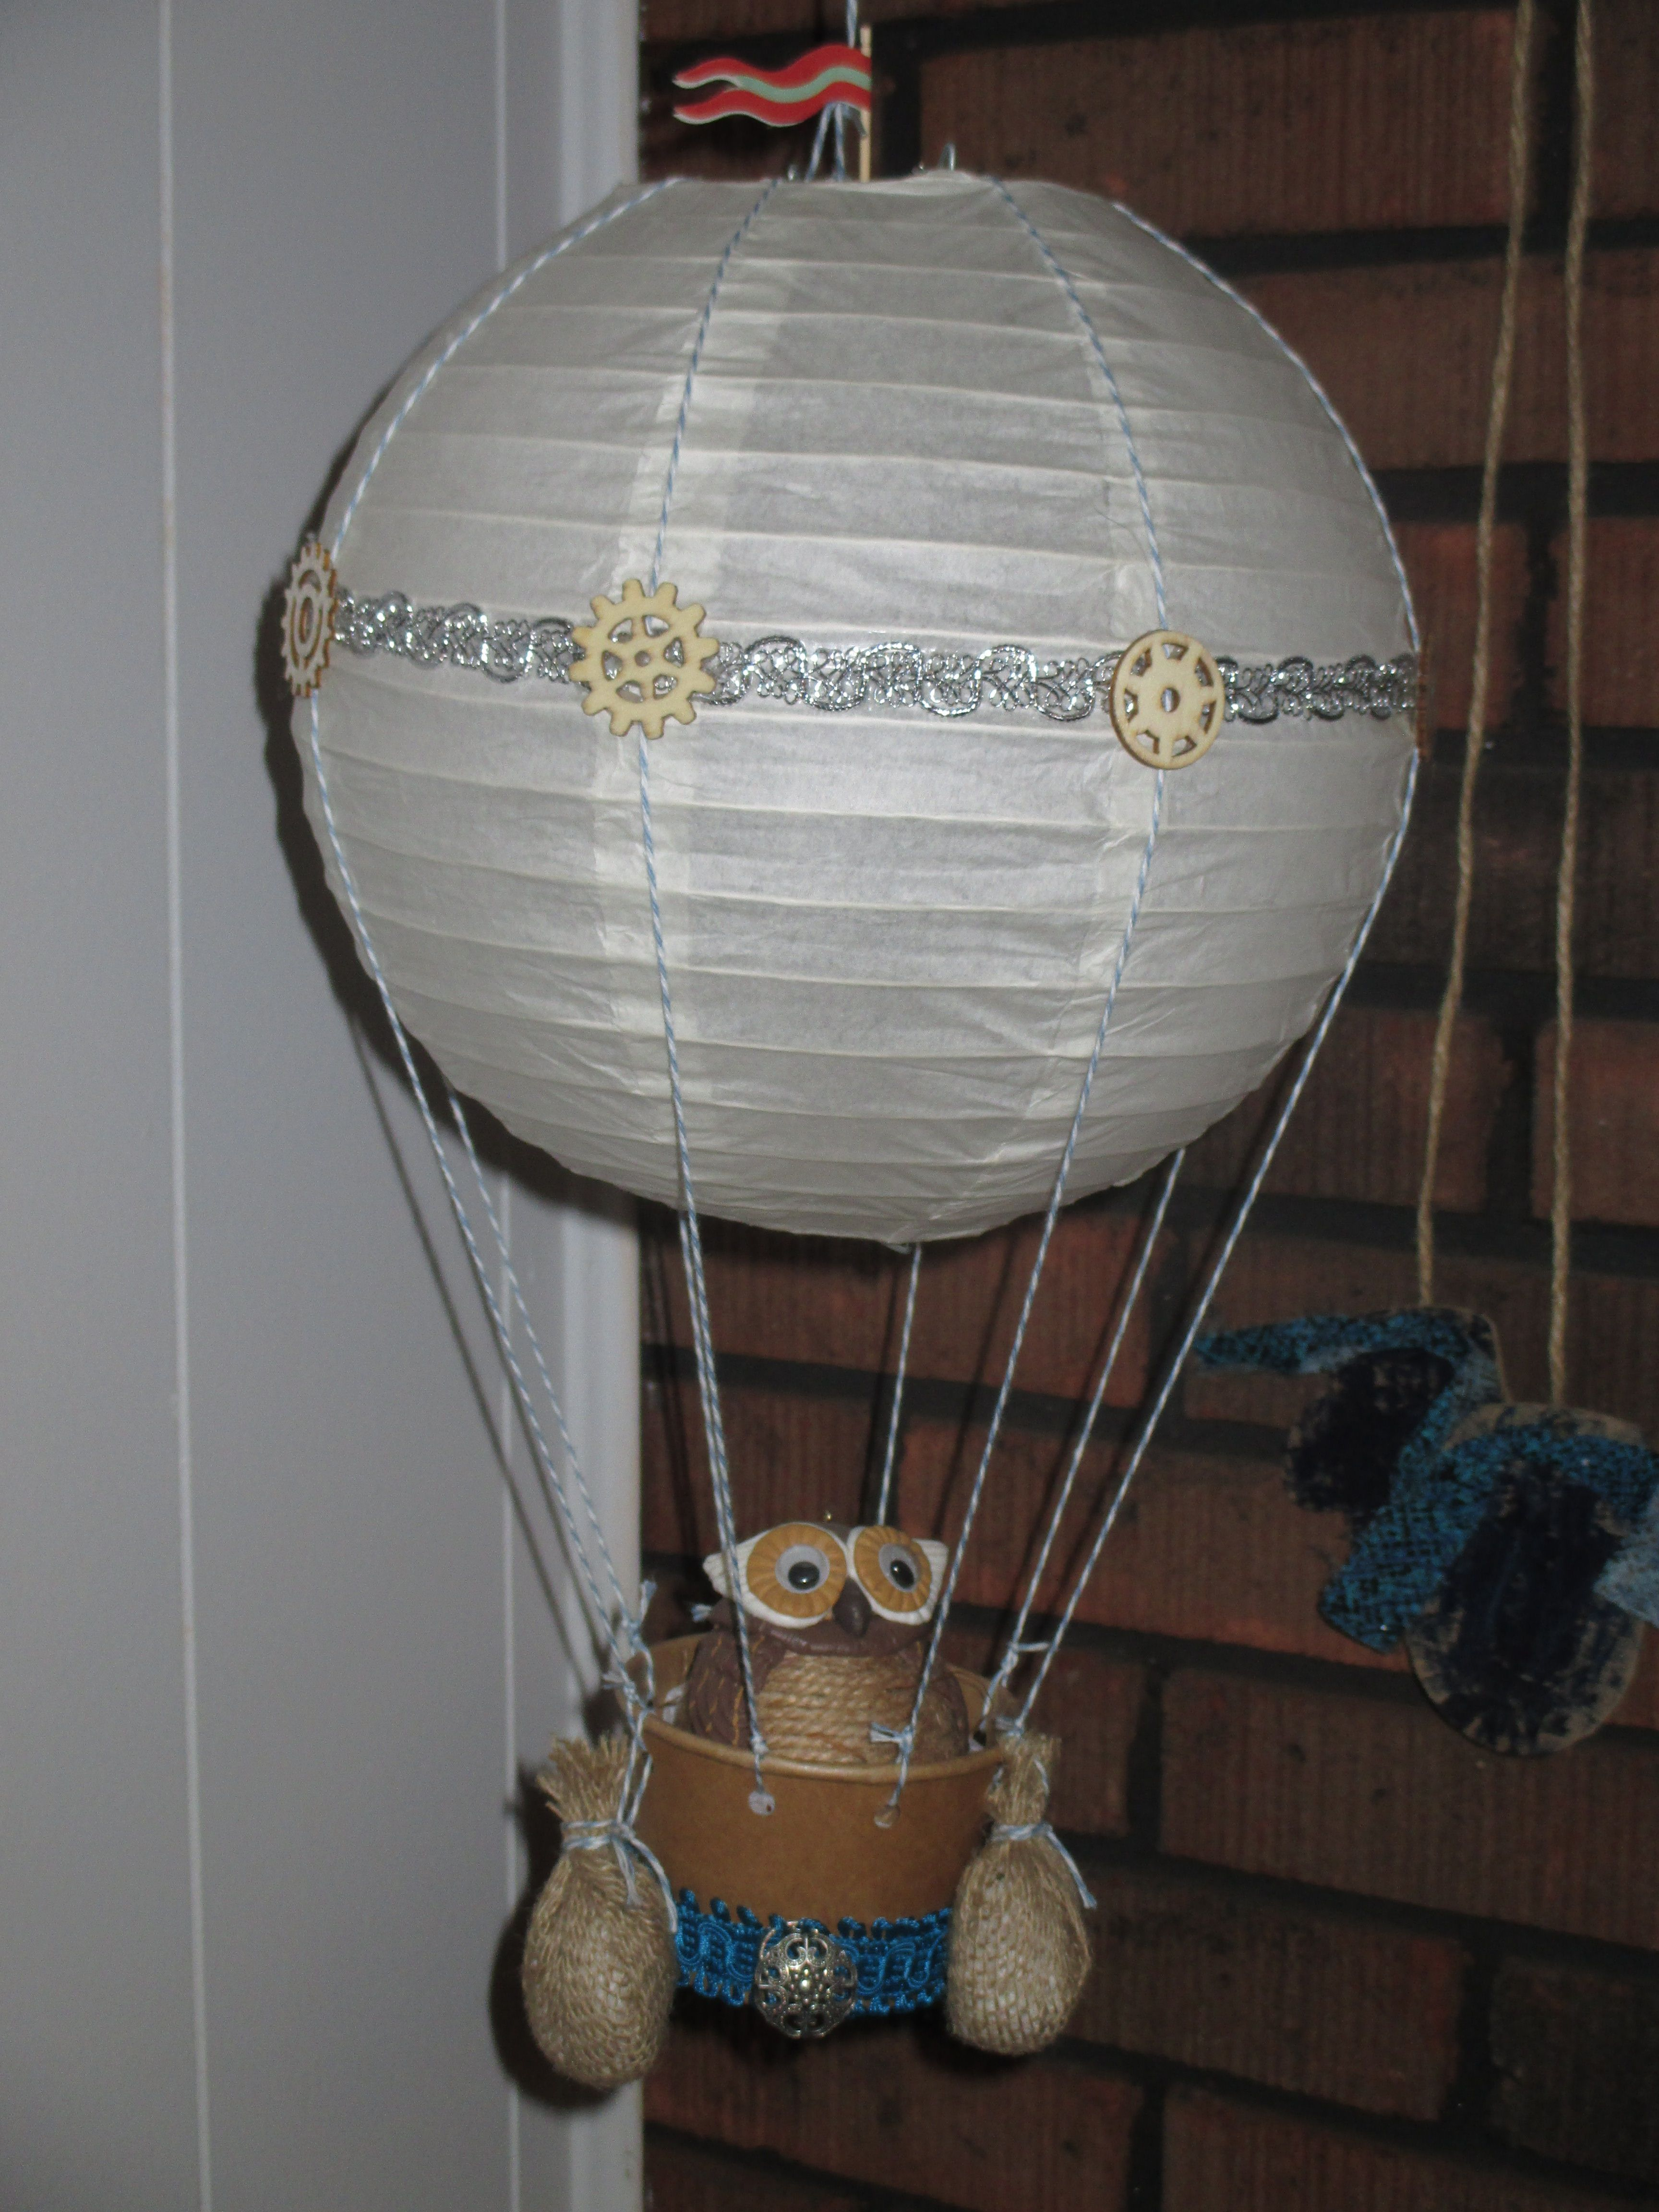 My interpretation of a steampunk hot air balloon